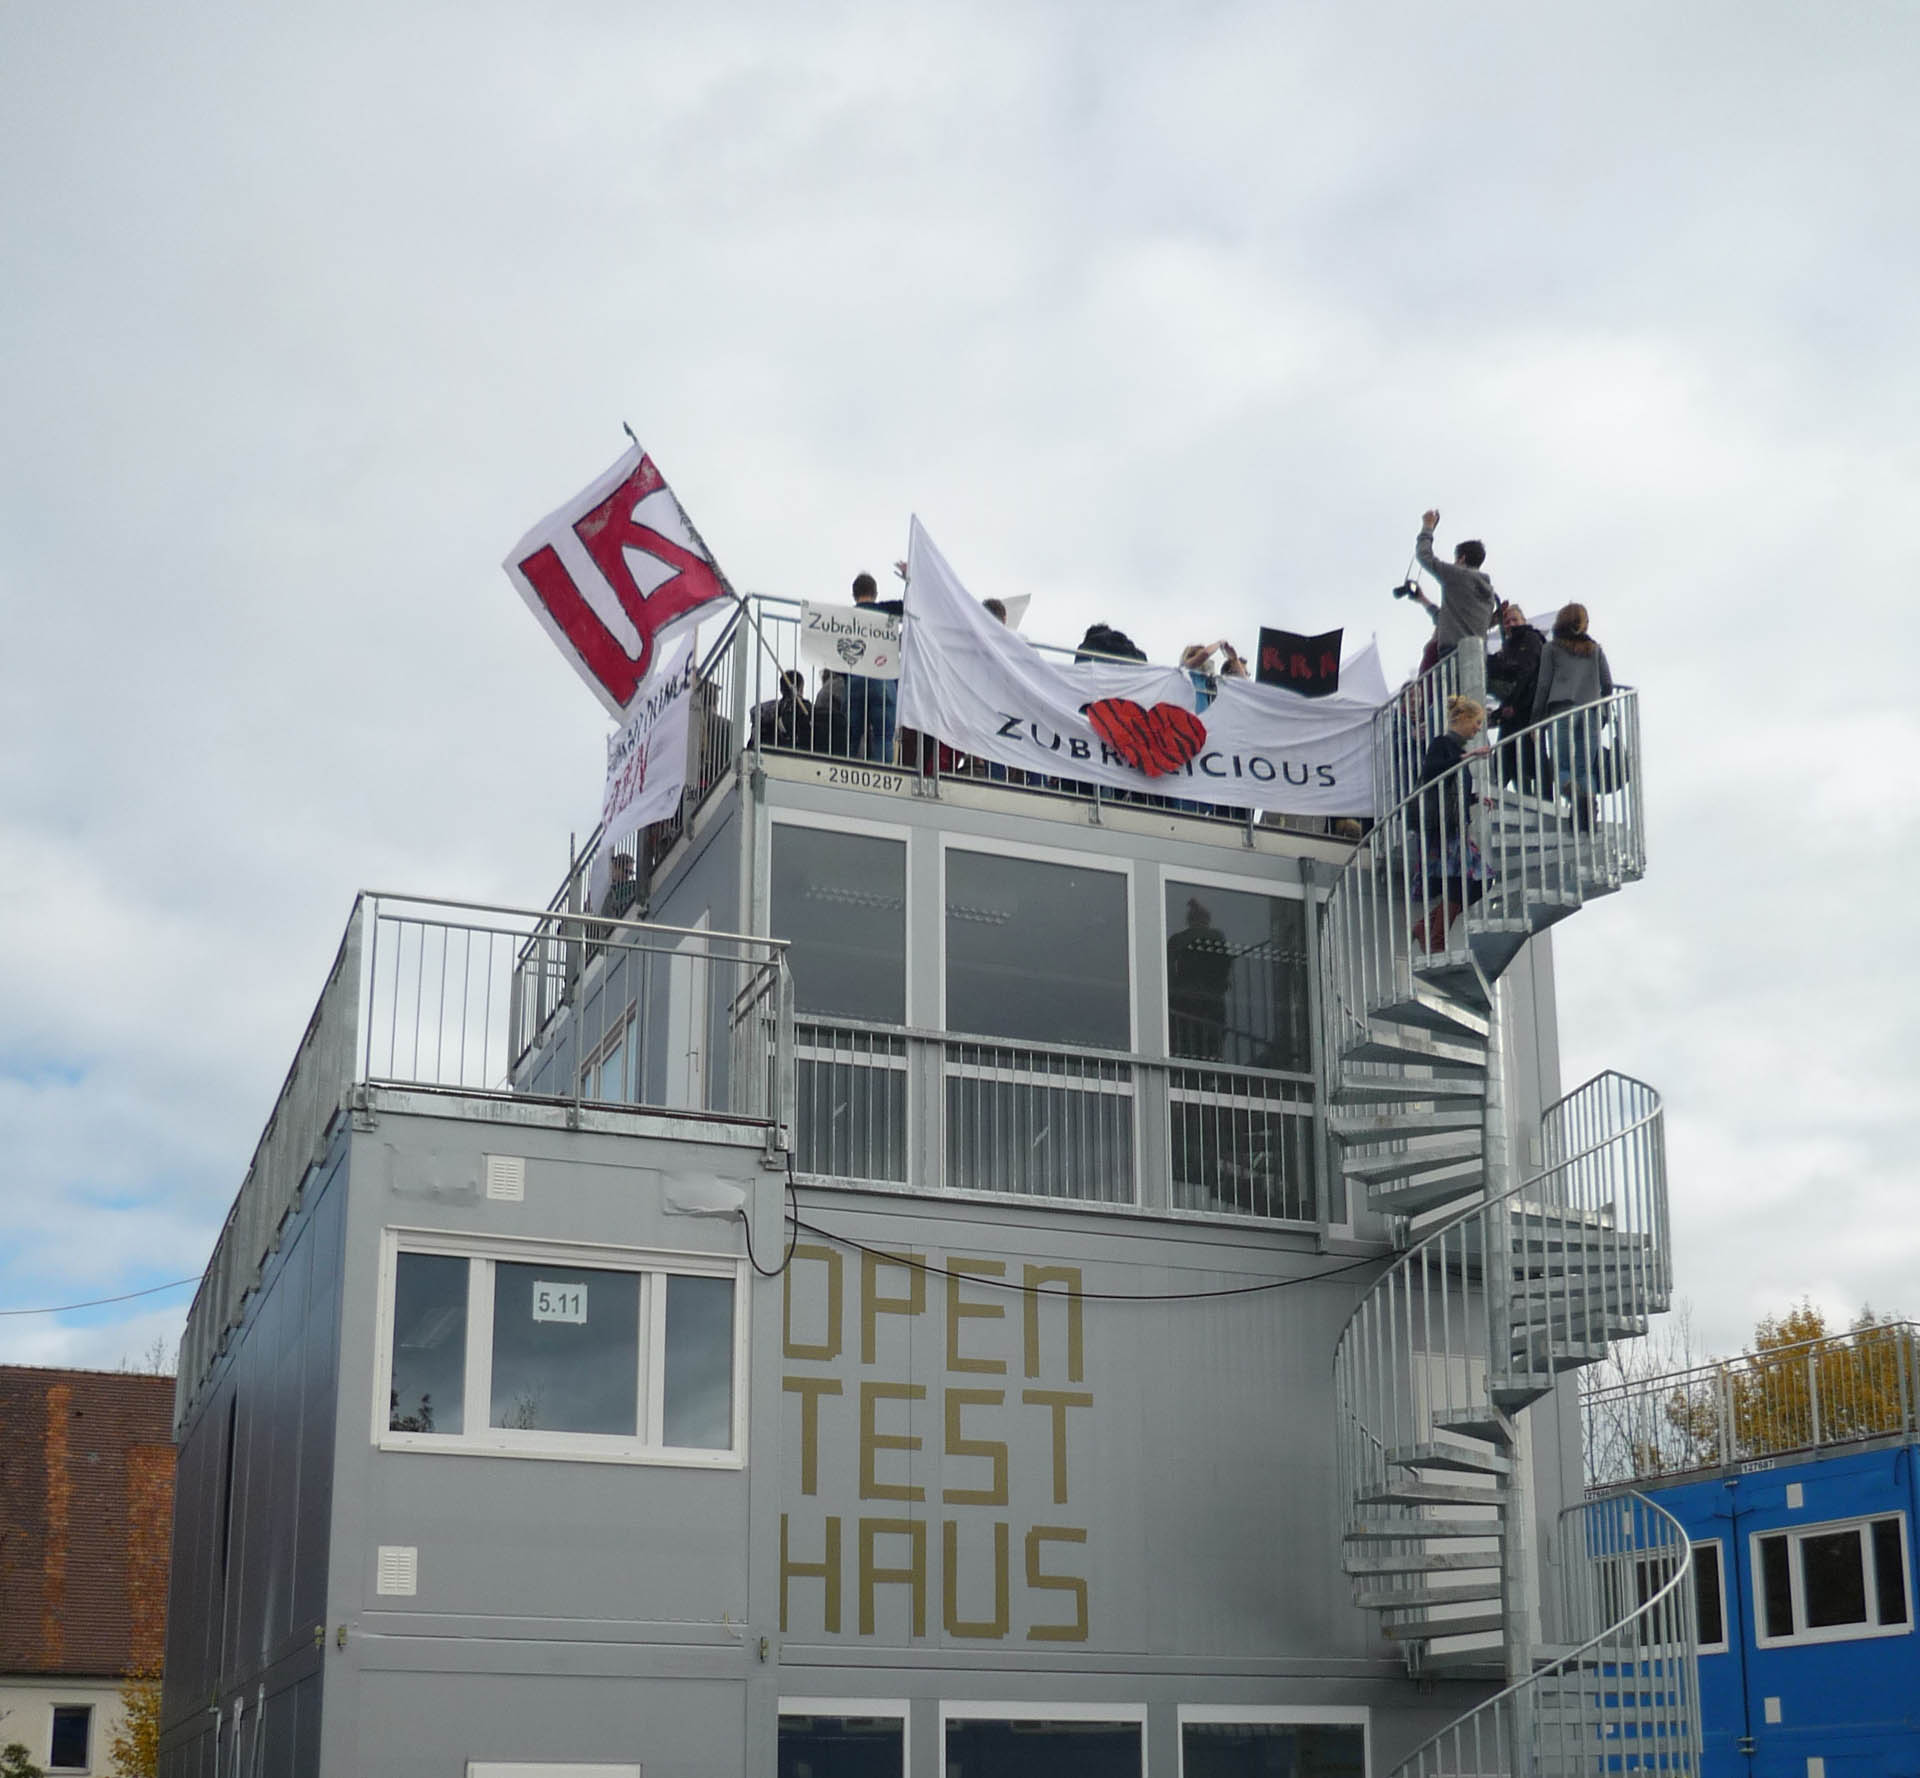 Open test Haus Rooftopparty No One